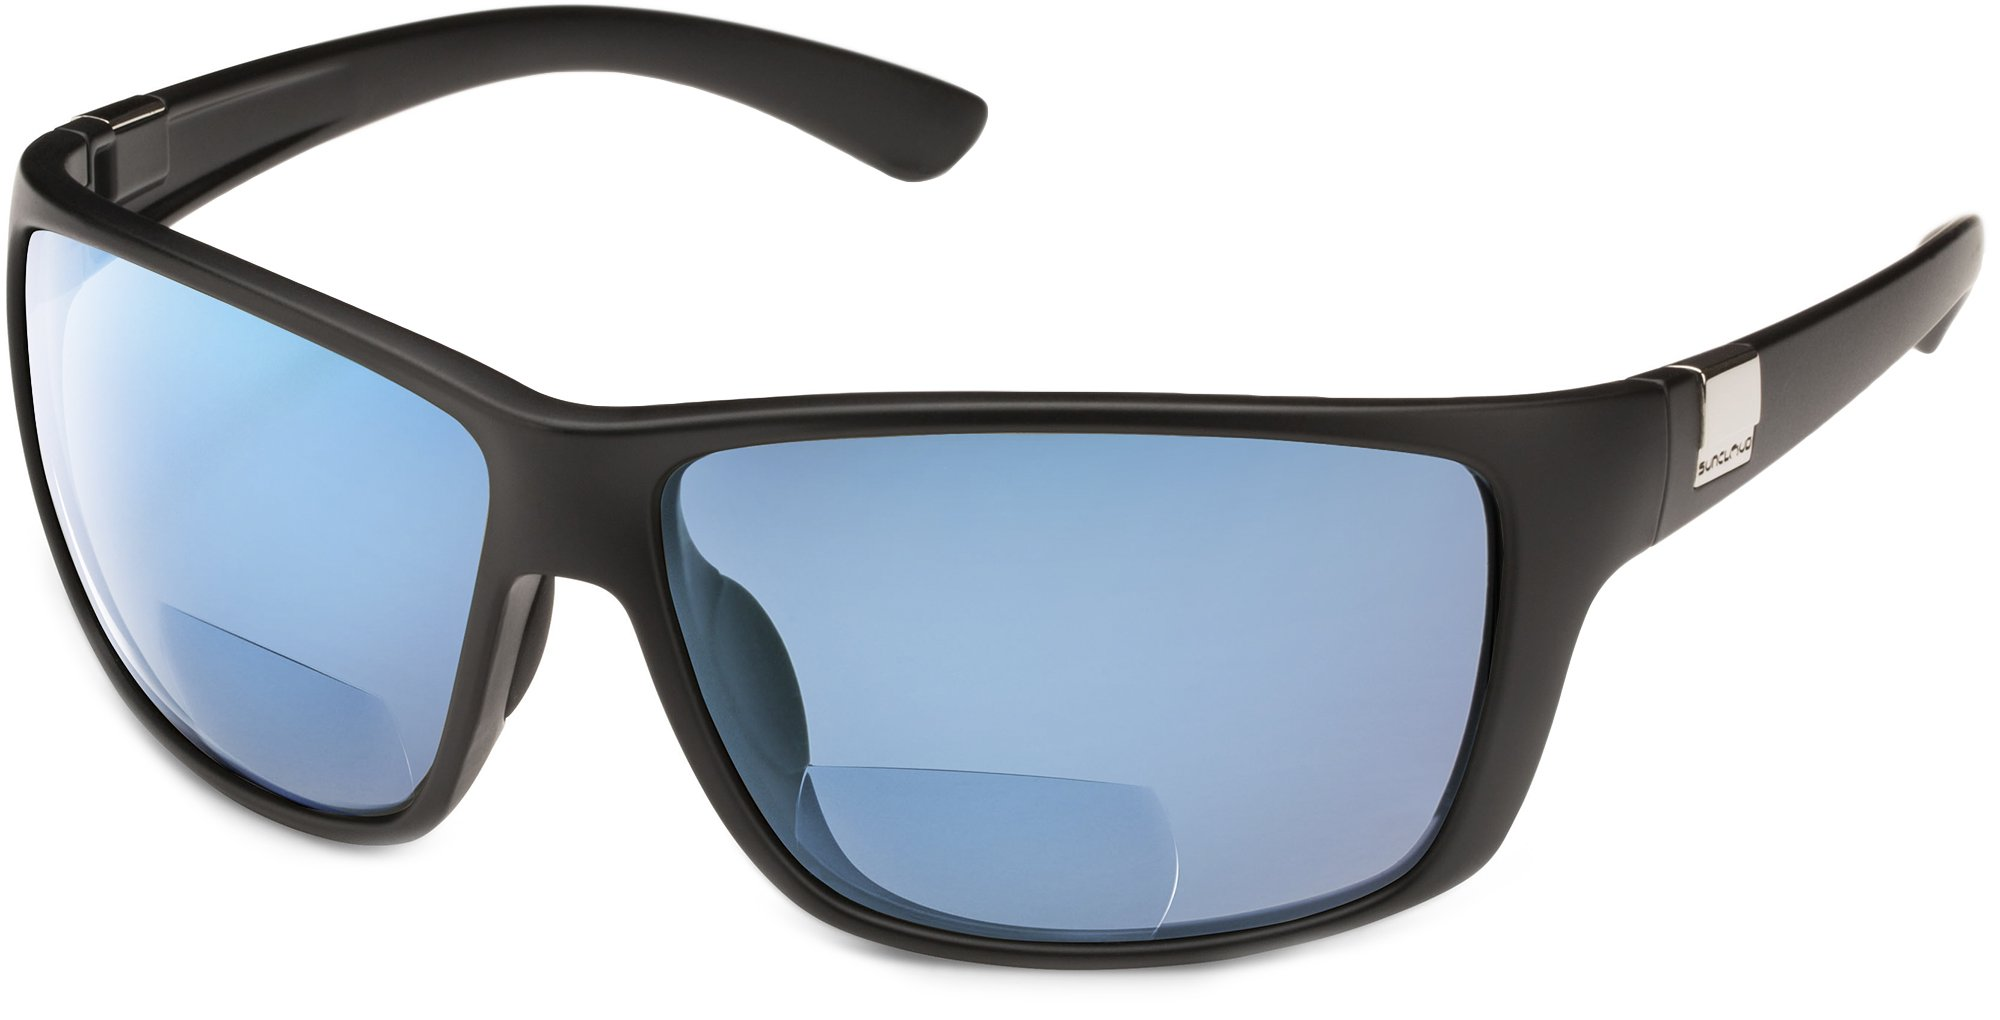 Suncloud Councilman Polarized Bi-Focal Reading Sunglasses in Matte Black with Blue Mirror Lens +1.50